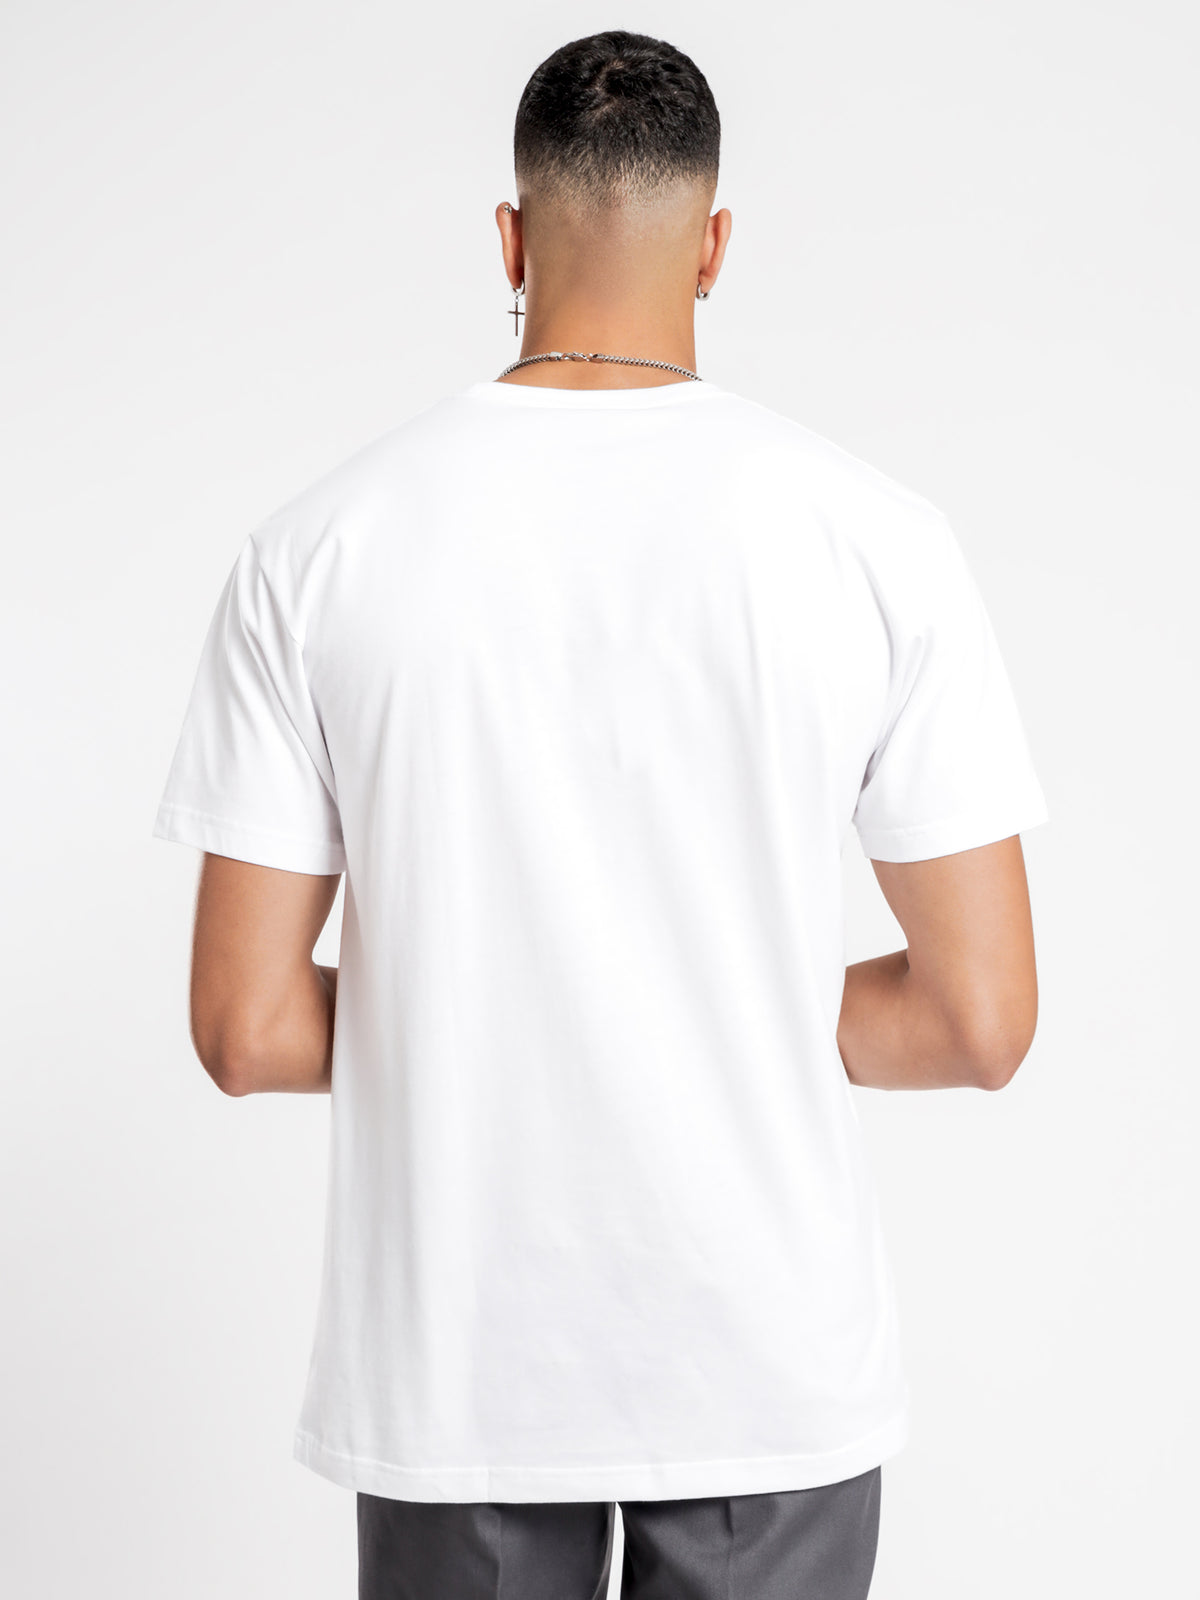 Duro Classic Fit Short Sleeve T-Shirt in White